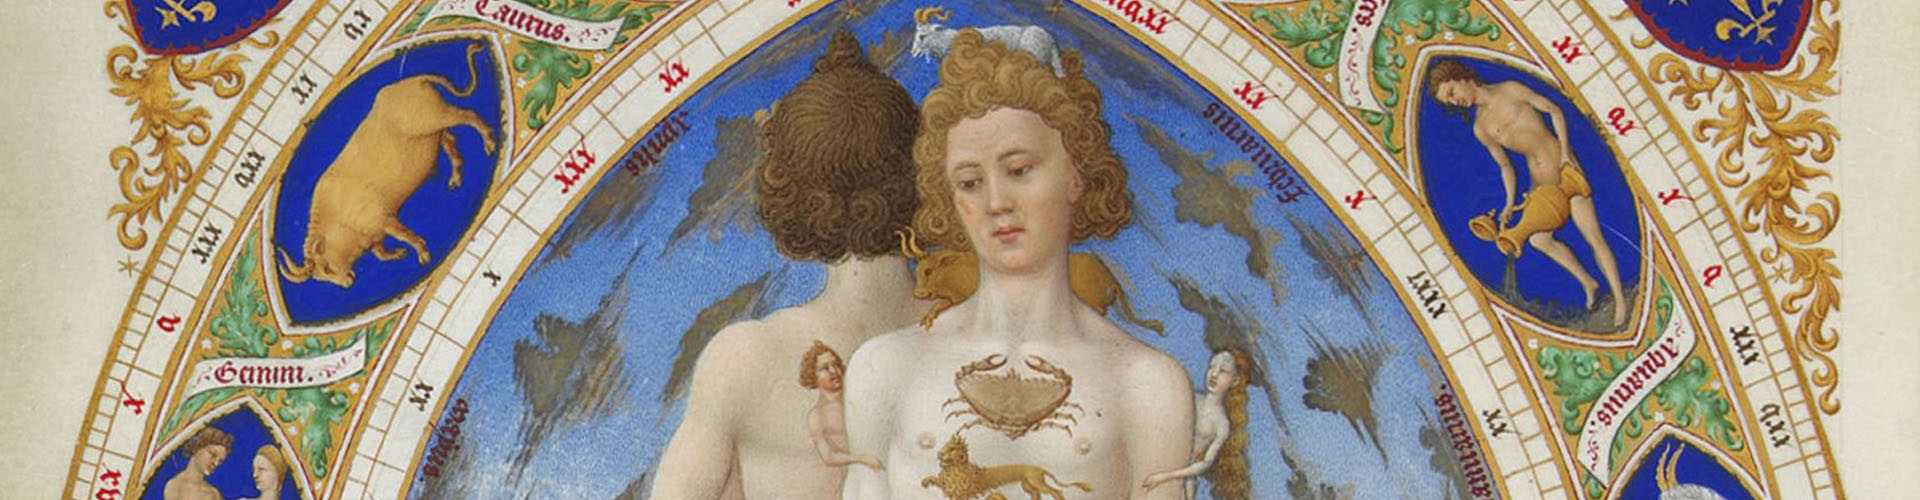 Astrology, Magic and Alchemy in Florentine and European Renaissance